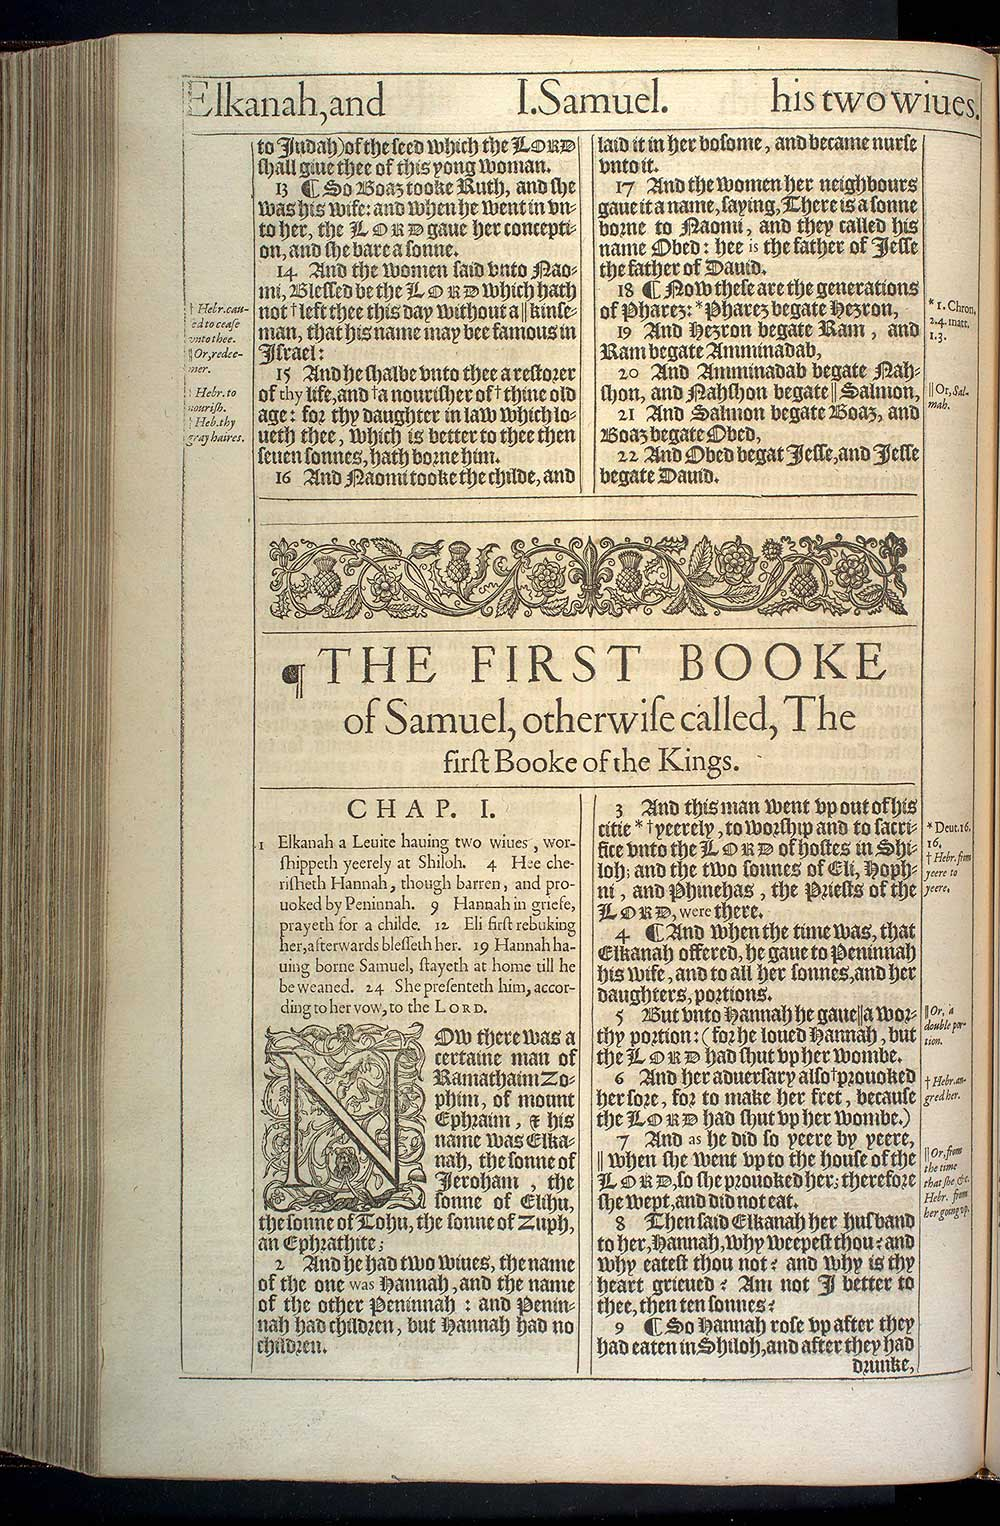 1 Samuel Chapter 1 Original 1611 Bible Scan